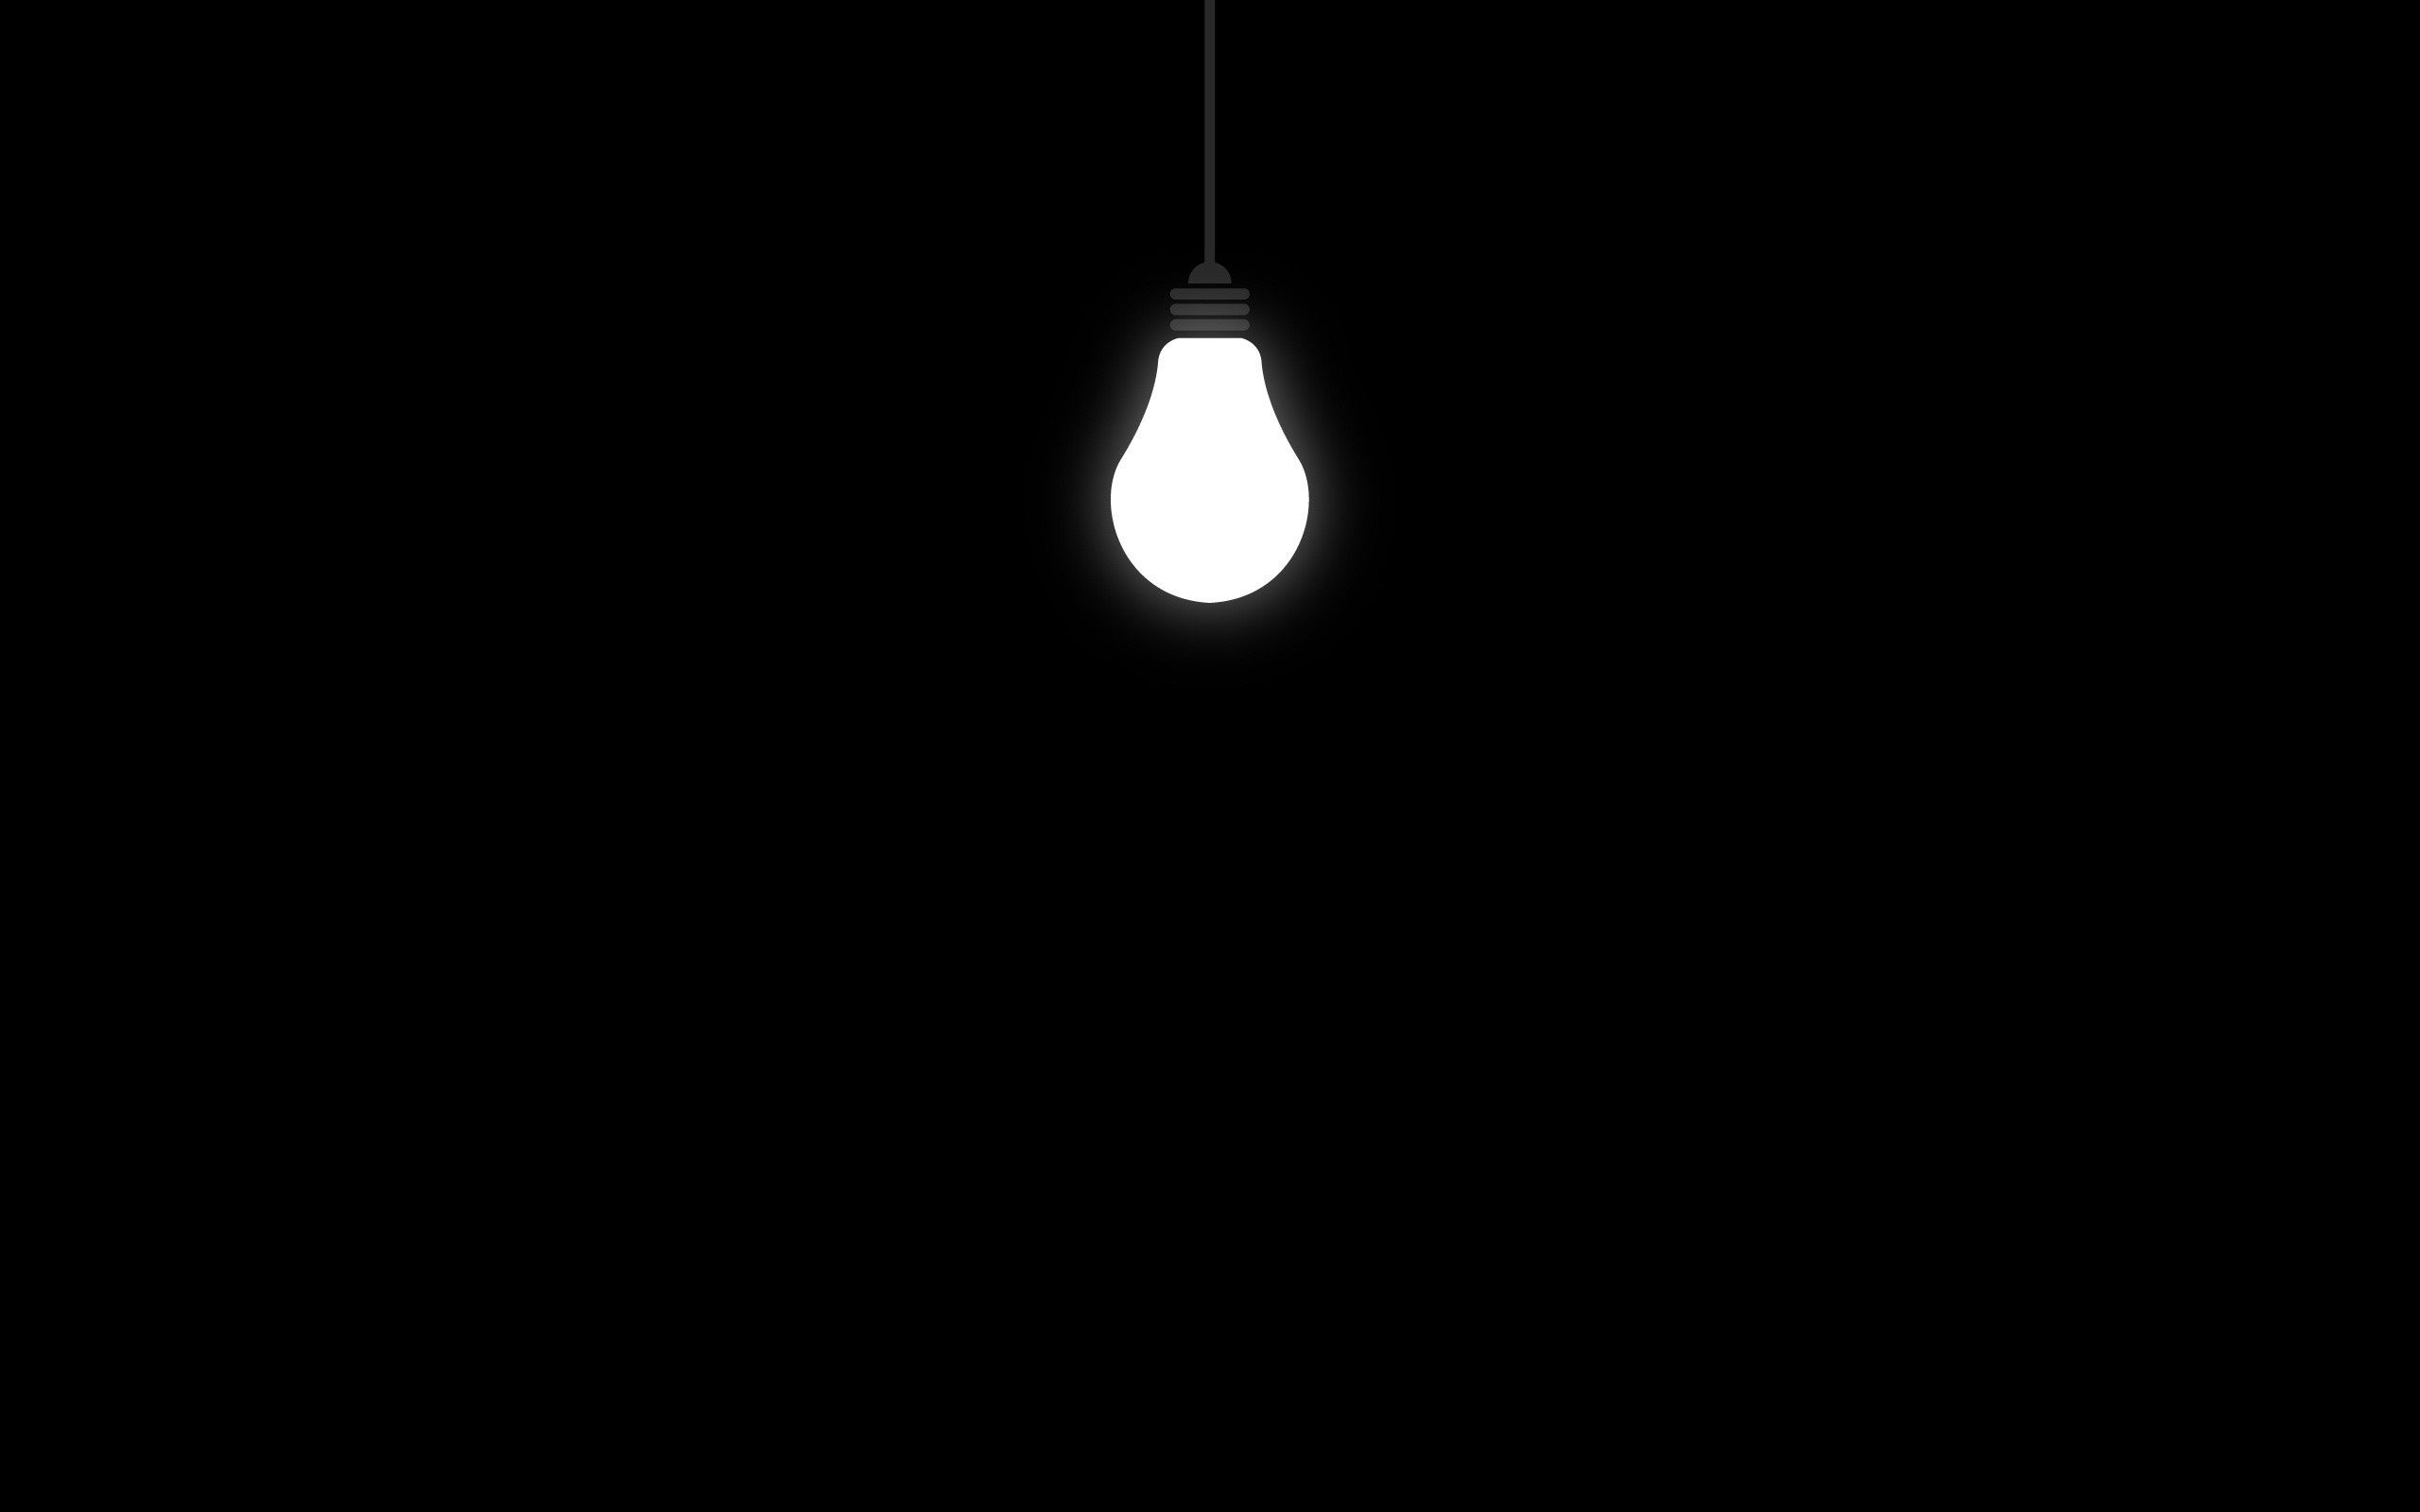 Pin By Ahmed Alemam On Black White Minimal Desktop